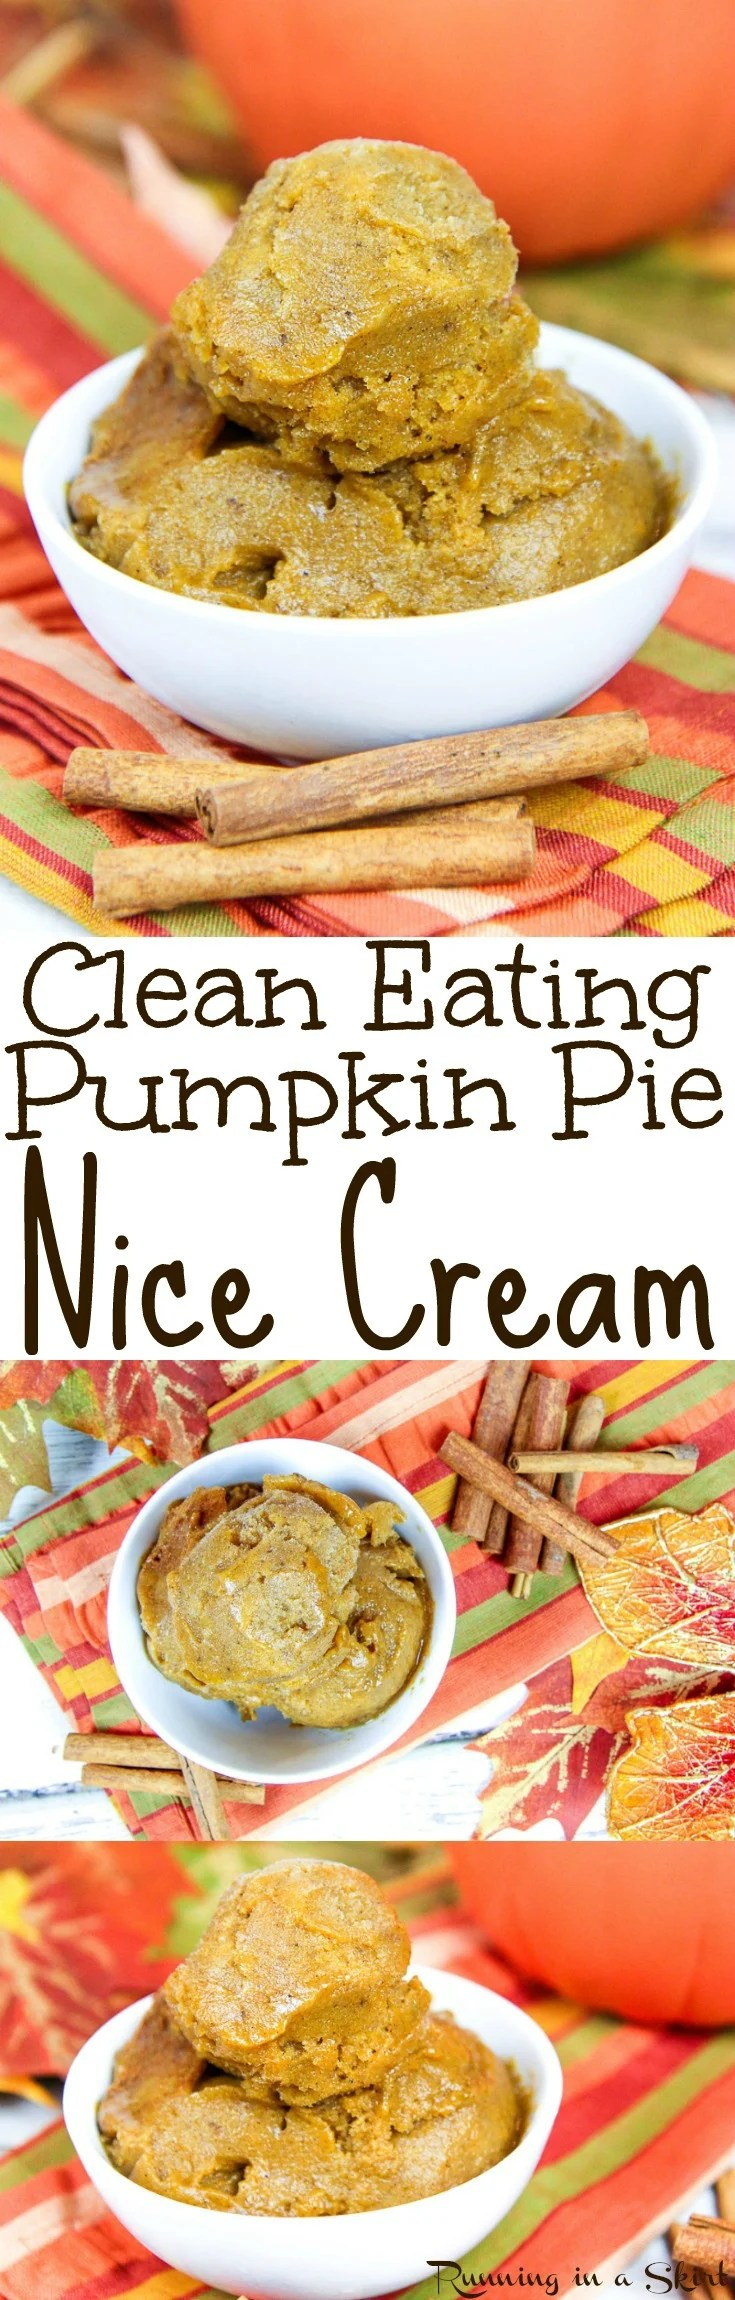 Clean Eating Pumpkin Nice Cream recipe. A healthy pumpkin pie flavored dessert for fall!  Homemade, simple and easy with no churn or ice cream maker. Uses banana with no added sugar! Vegan & Dairy-free / Running in a Skirt via @juliewunder